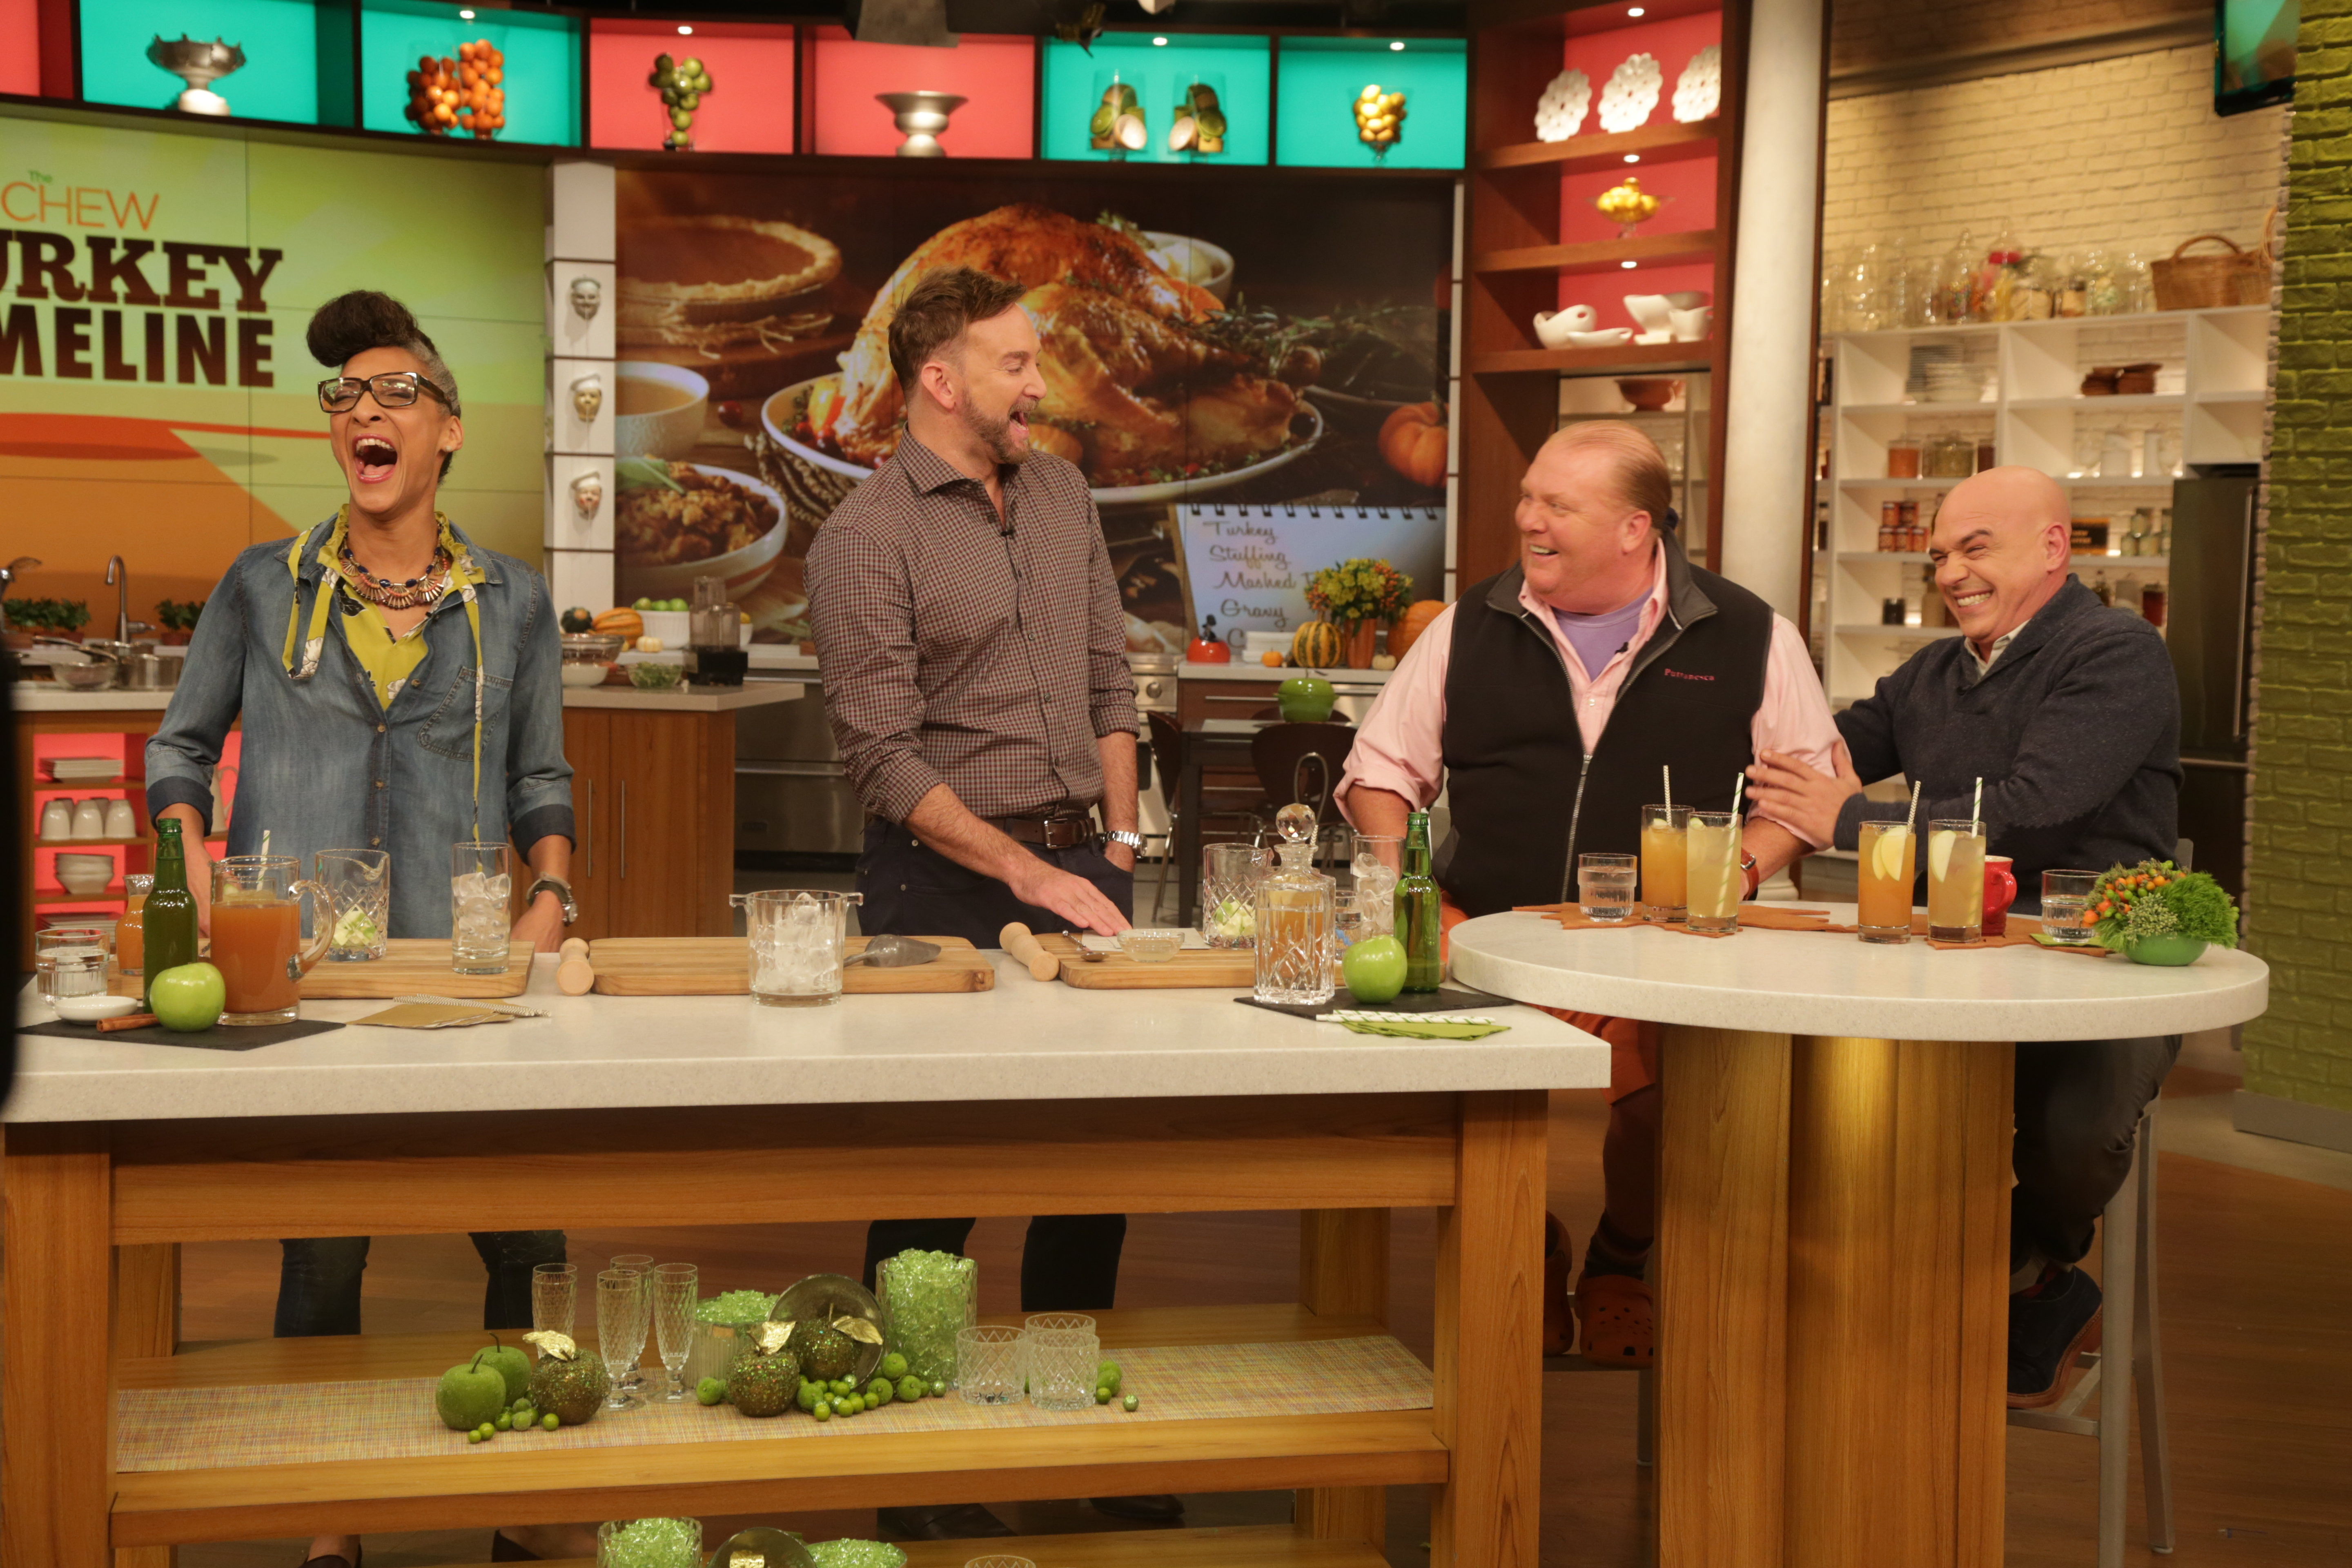 The Chew the chew's schedule for the week of 11/23: drew barrymore, alison